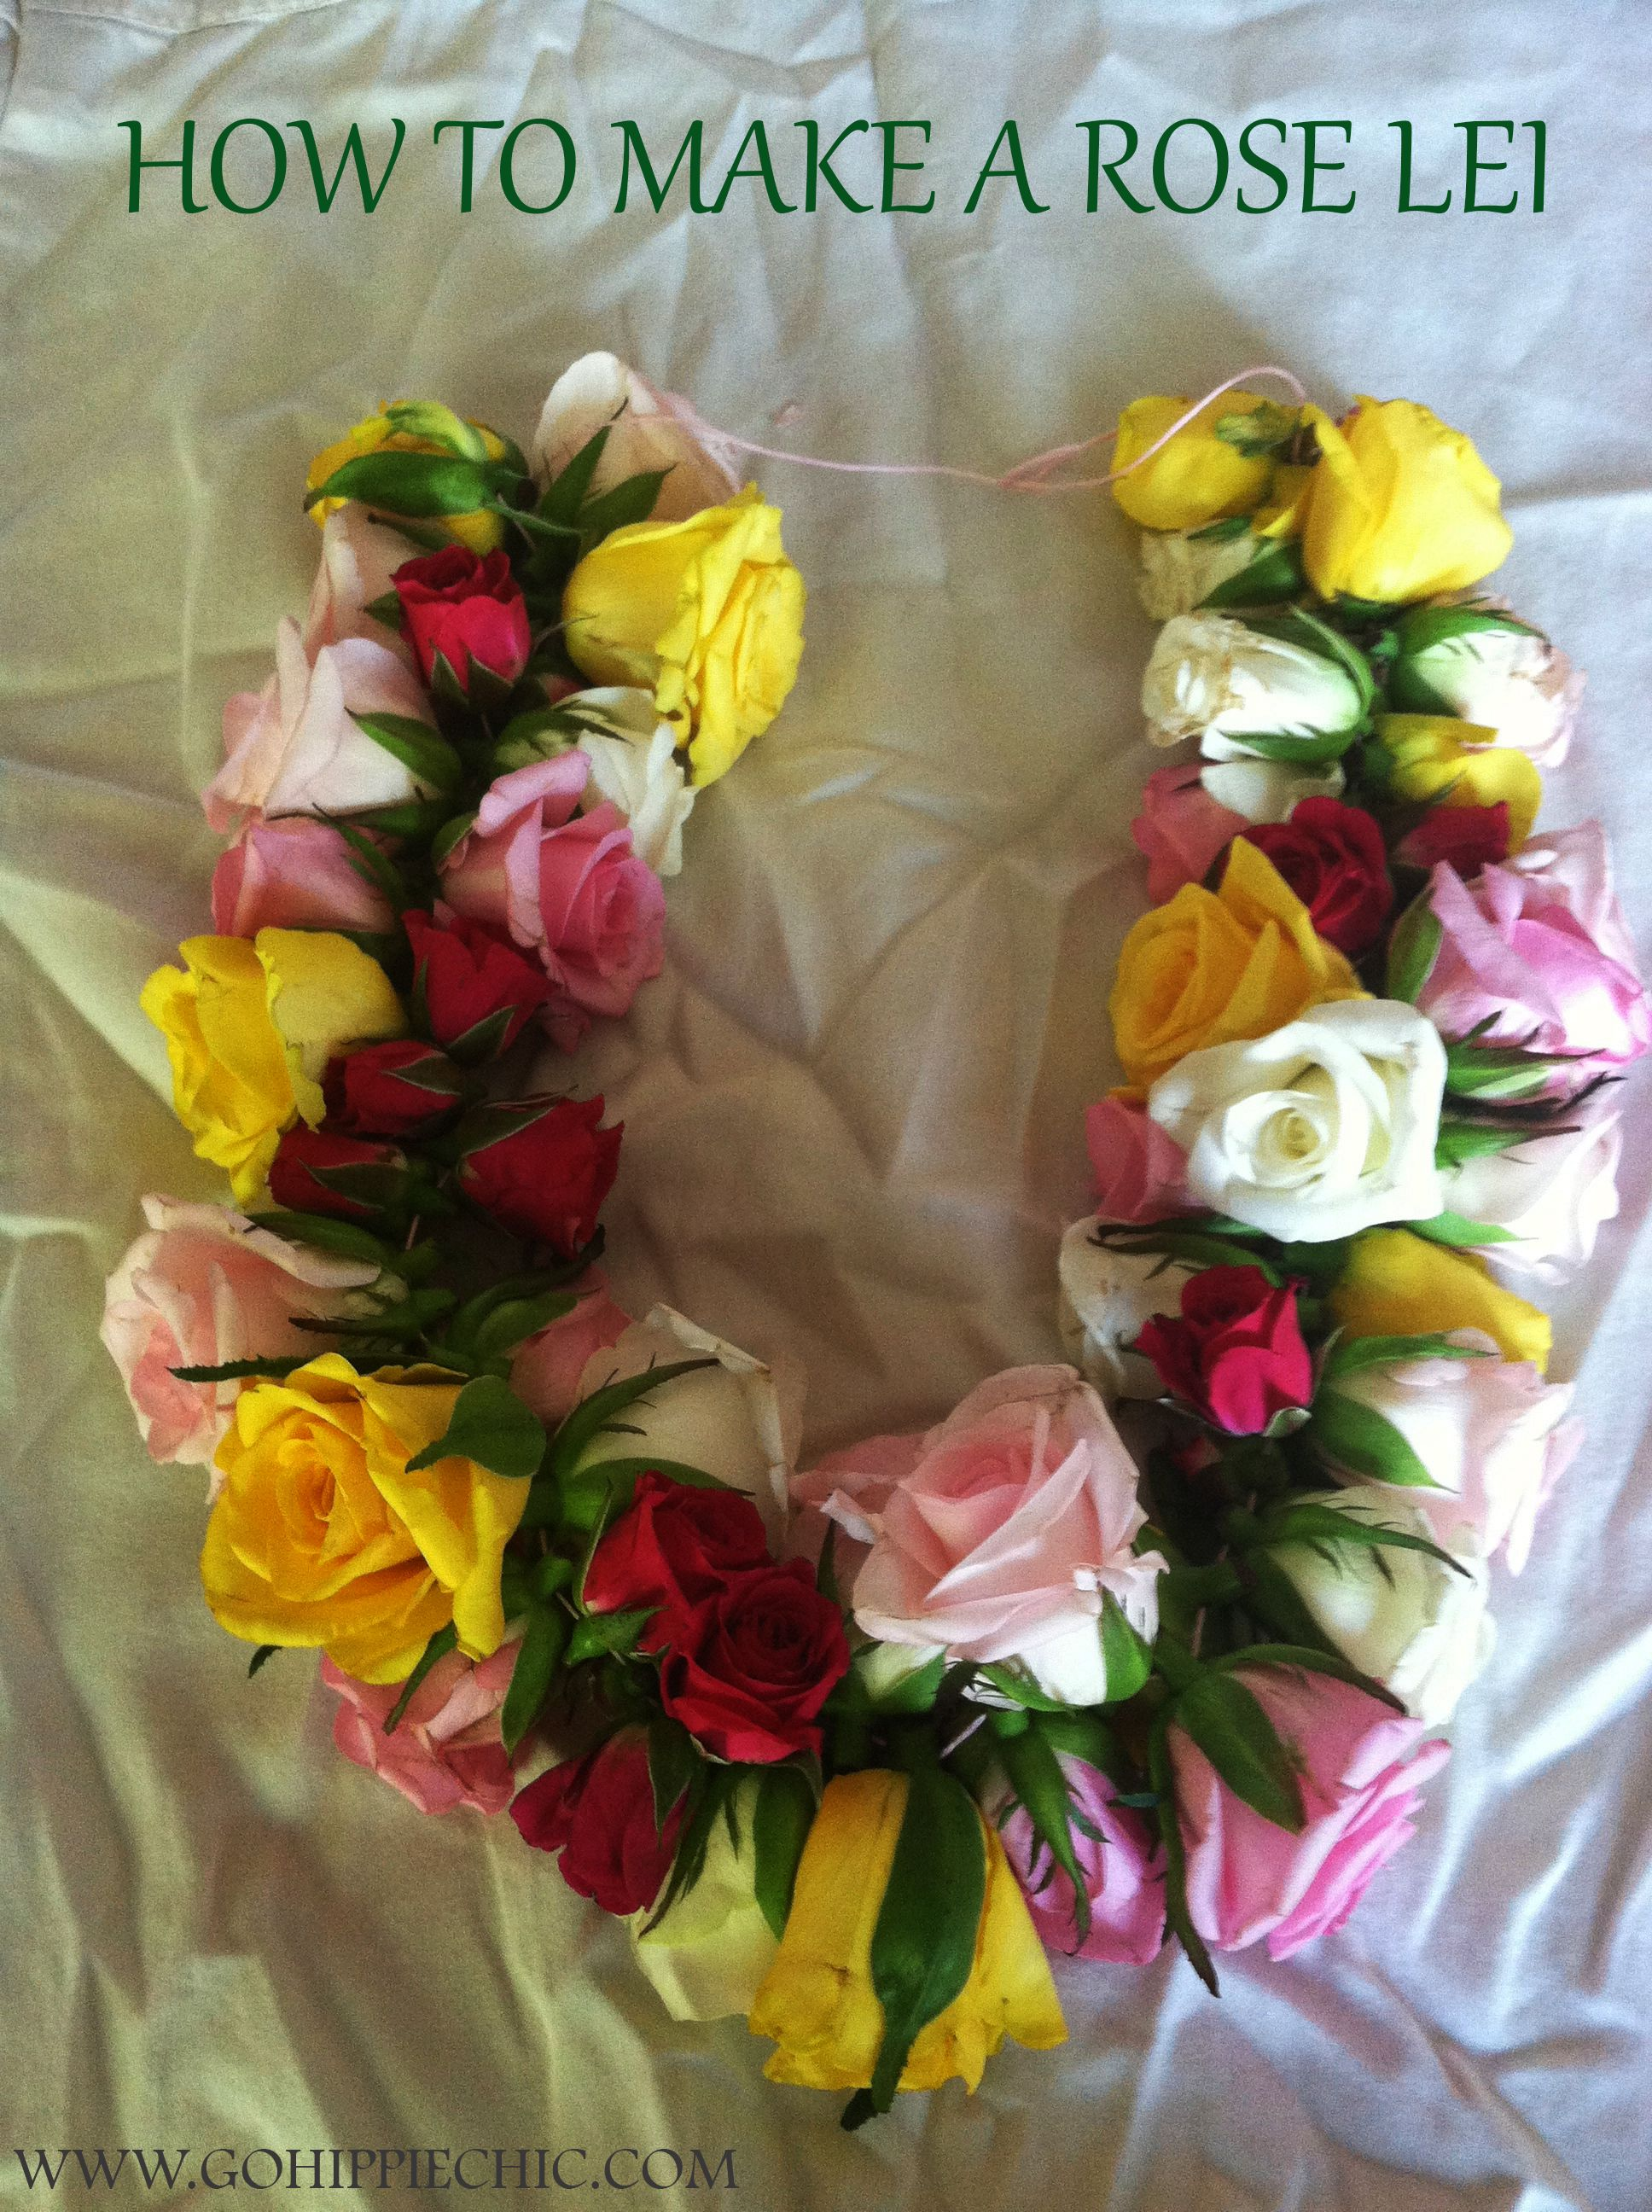 How to make a lei a fresh flower lei with roses craft projects how to make a lei a fresh flower lei with roses izmirmasajfo